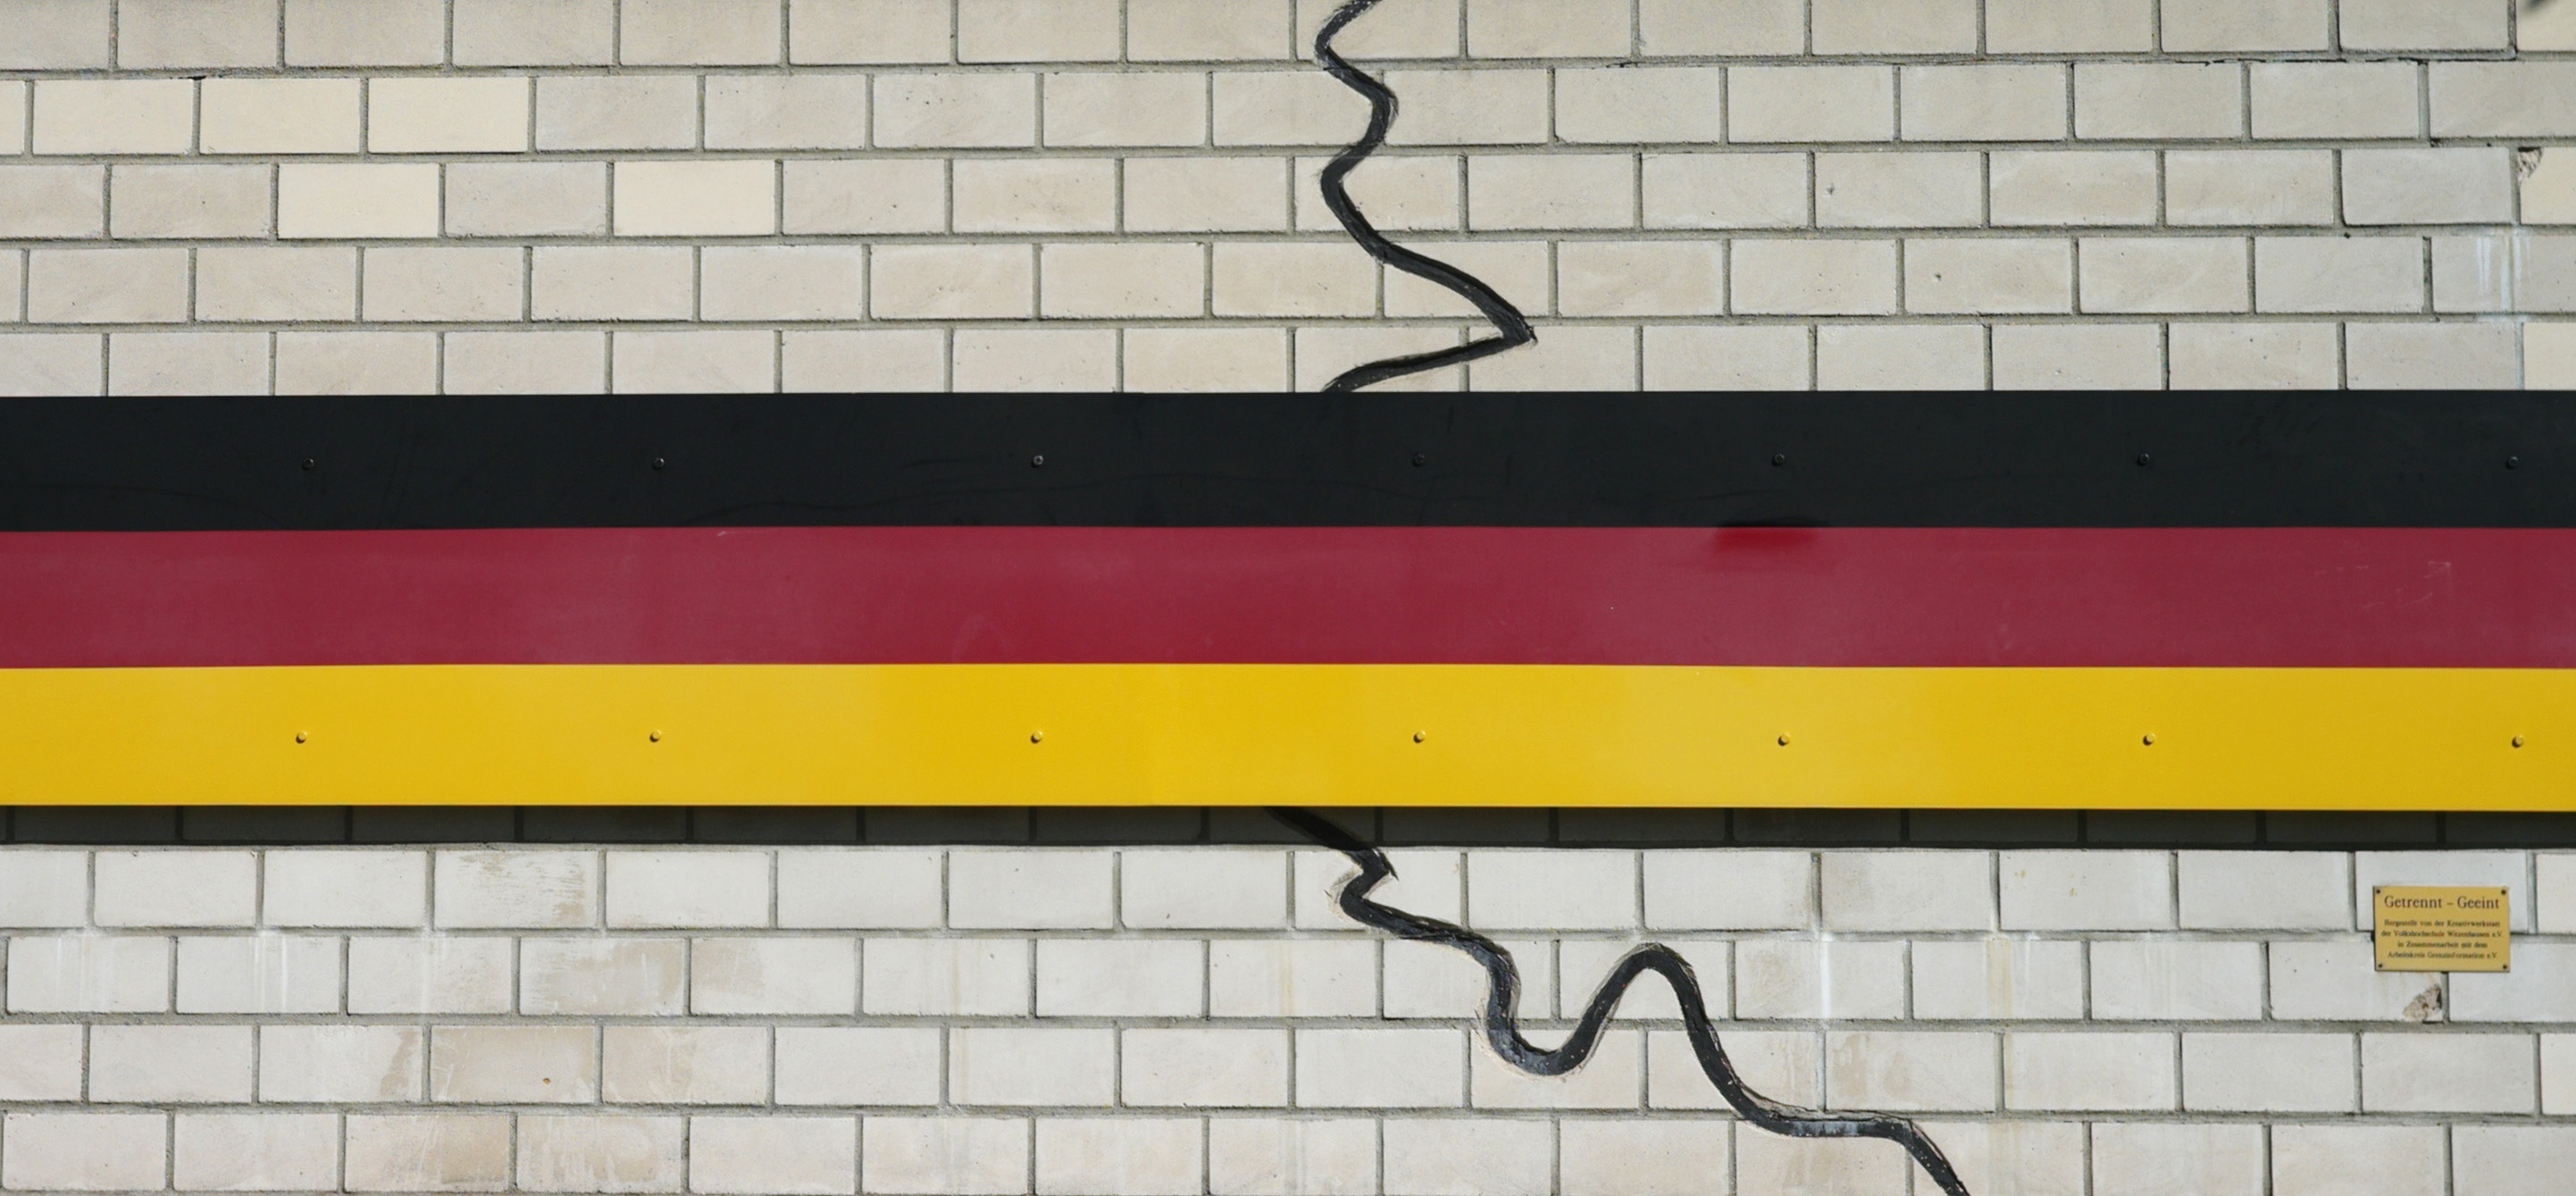 a history of east and west germany in the years of their separation On november 9th, 1989, the wall that divided east and west berlin came down   read also: walls in their minds: east-west split remains.